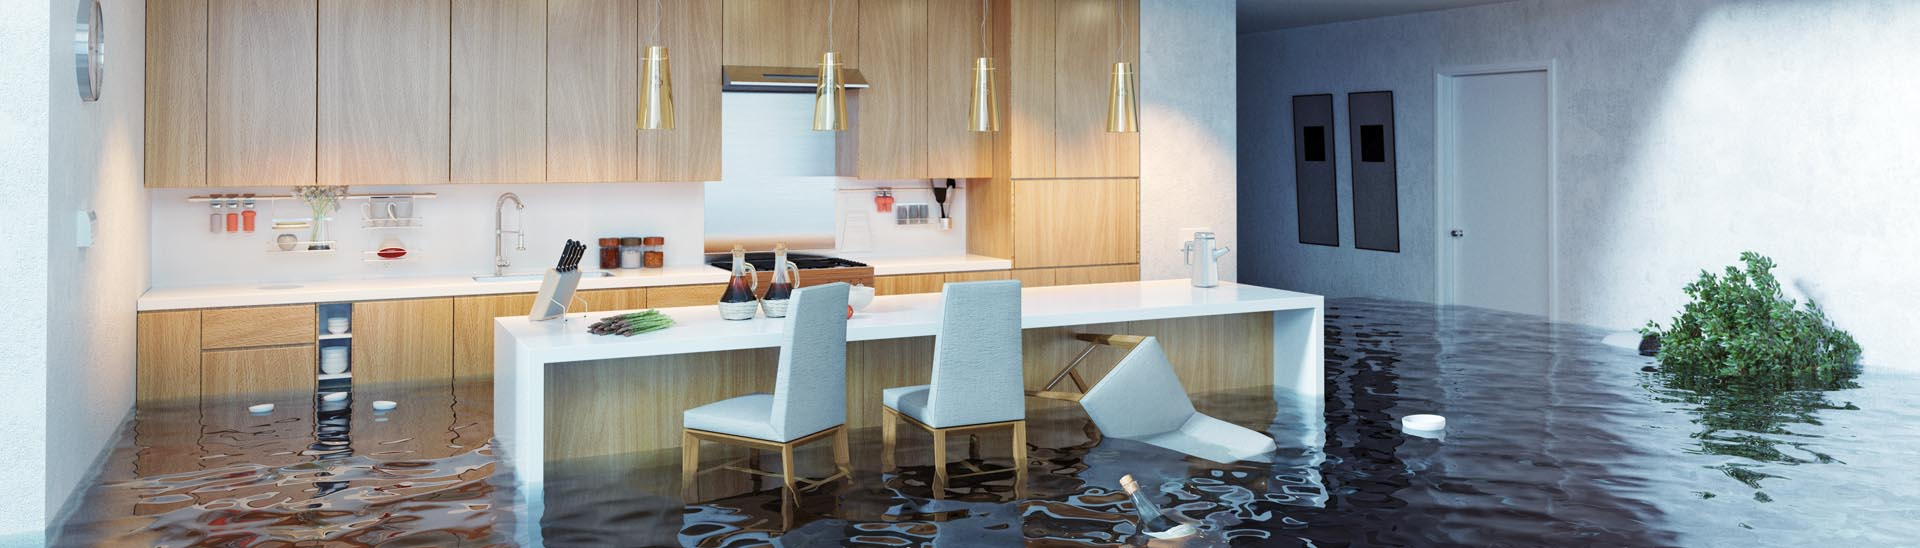 flood insurance miami florida